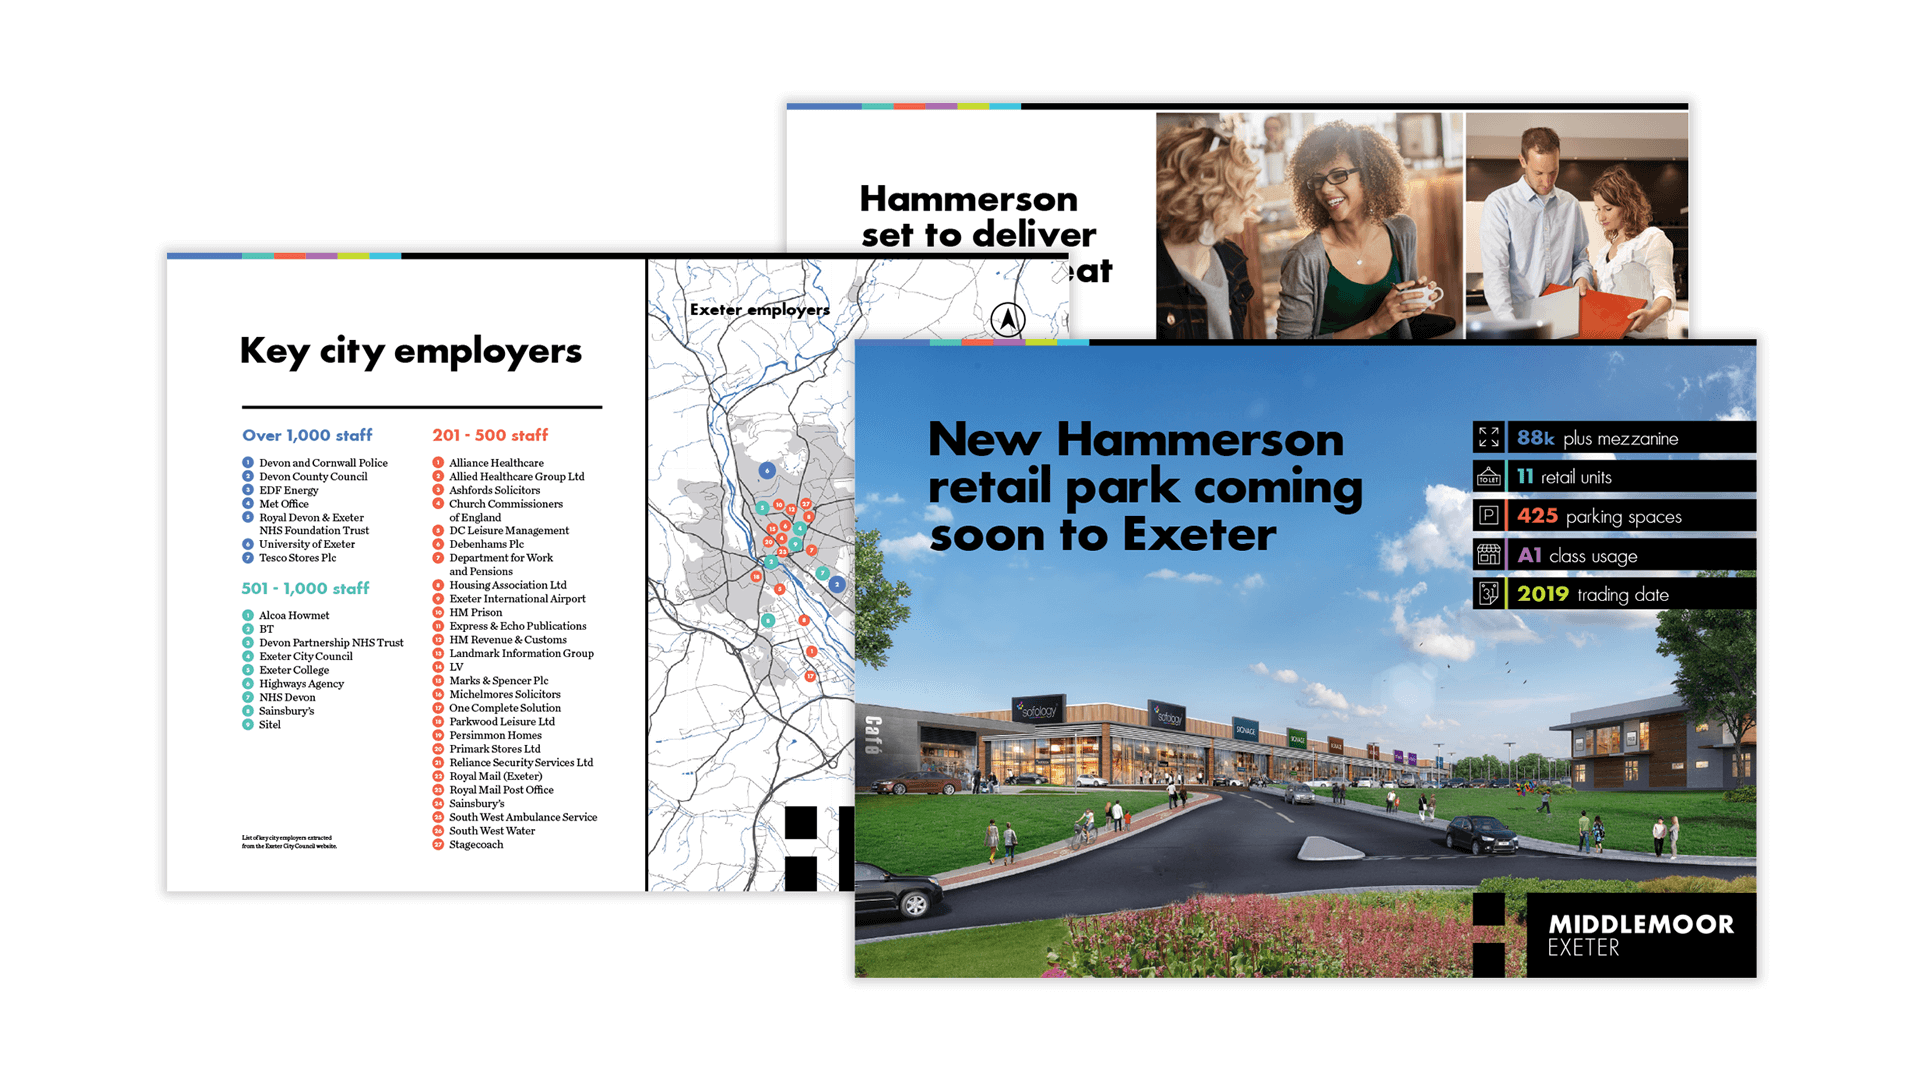 Hammerson - Marketing brochures & hoardings